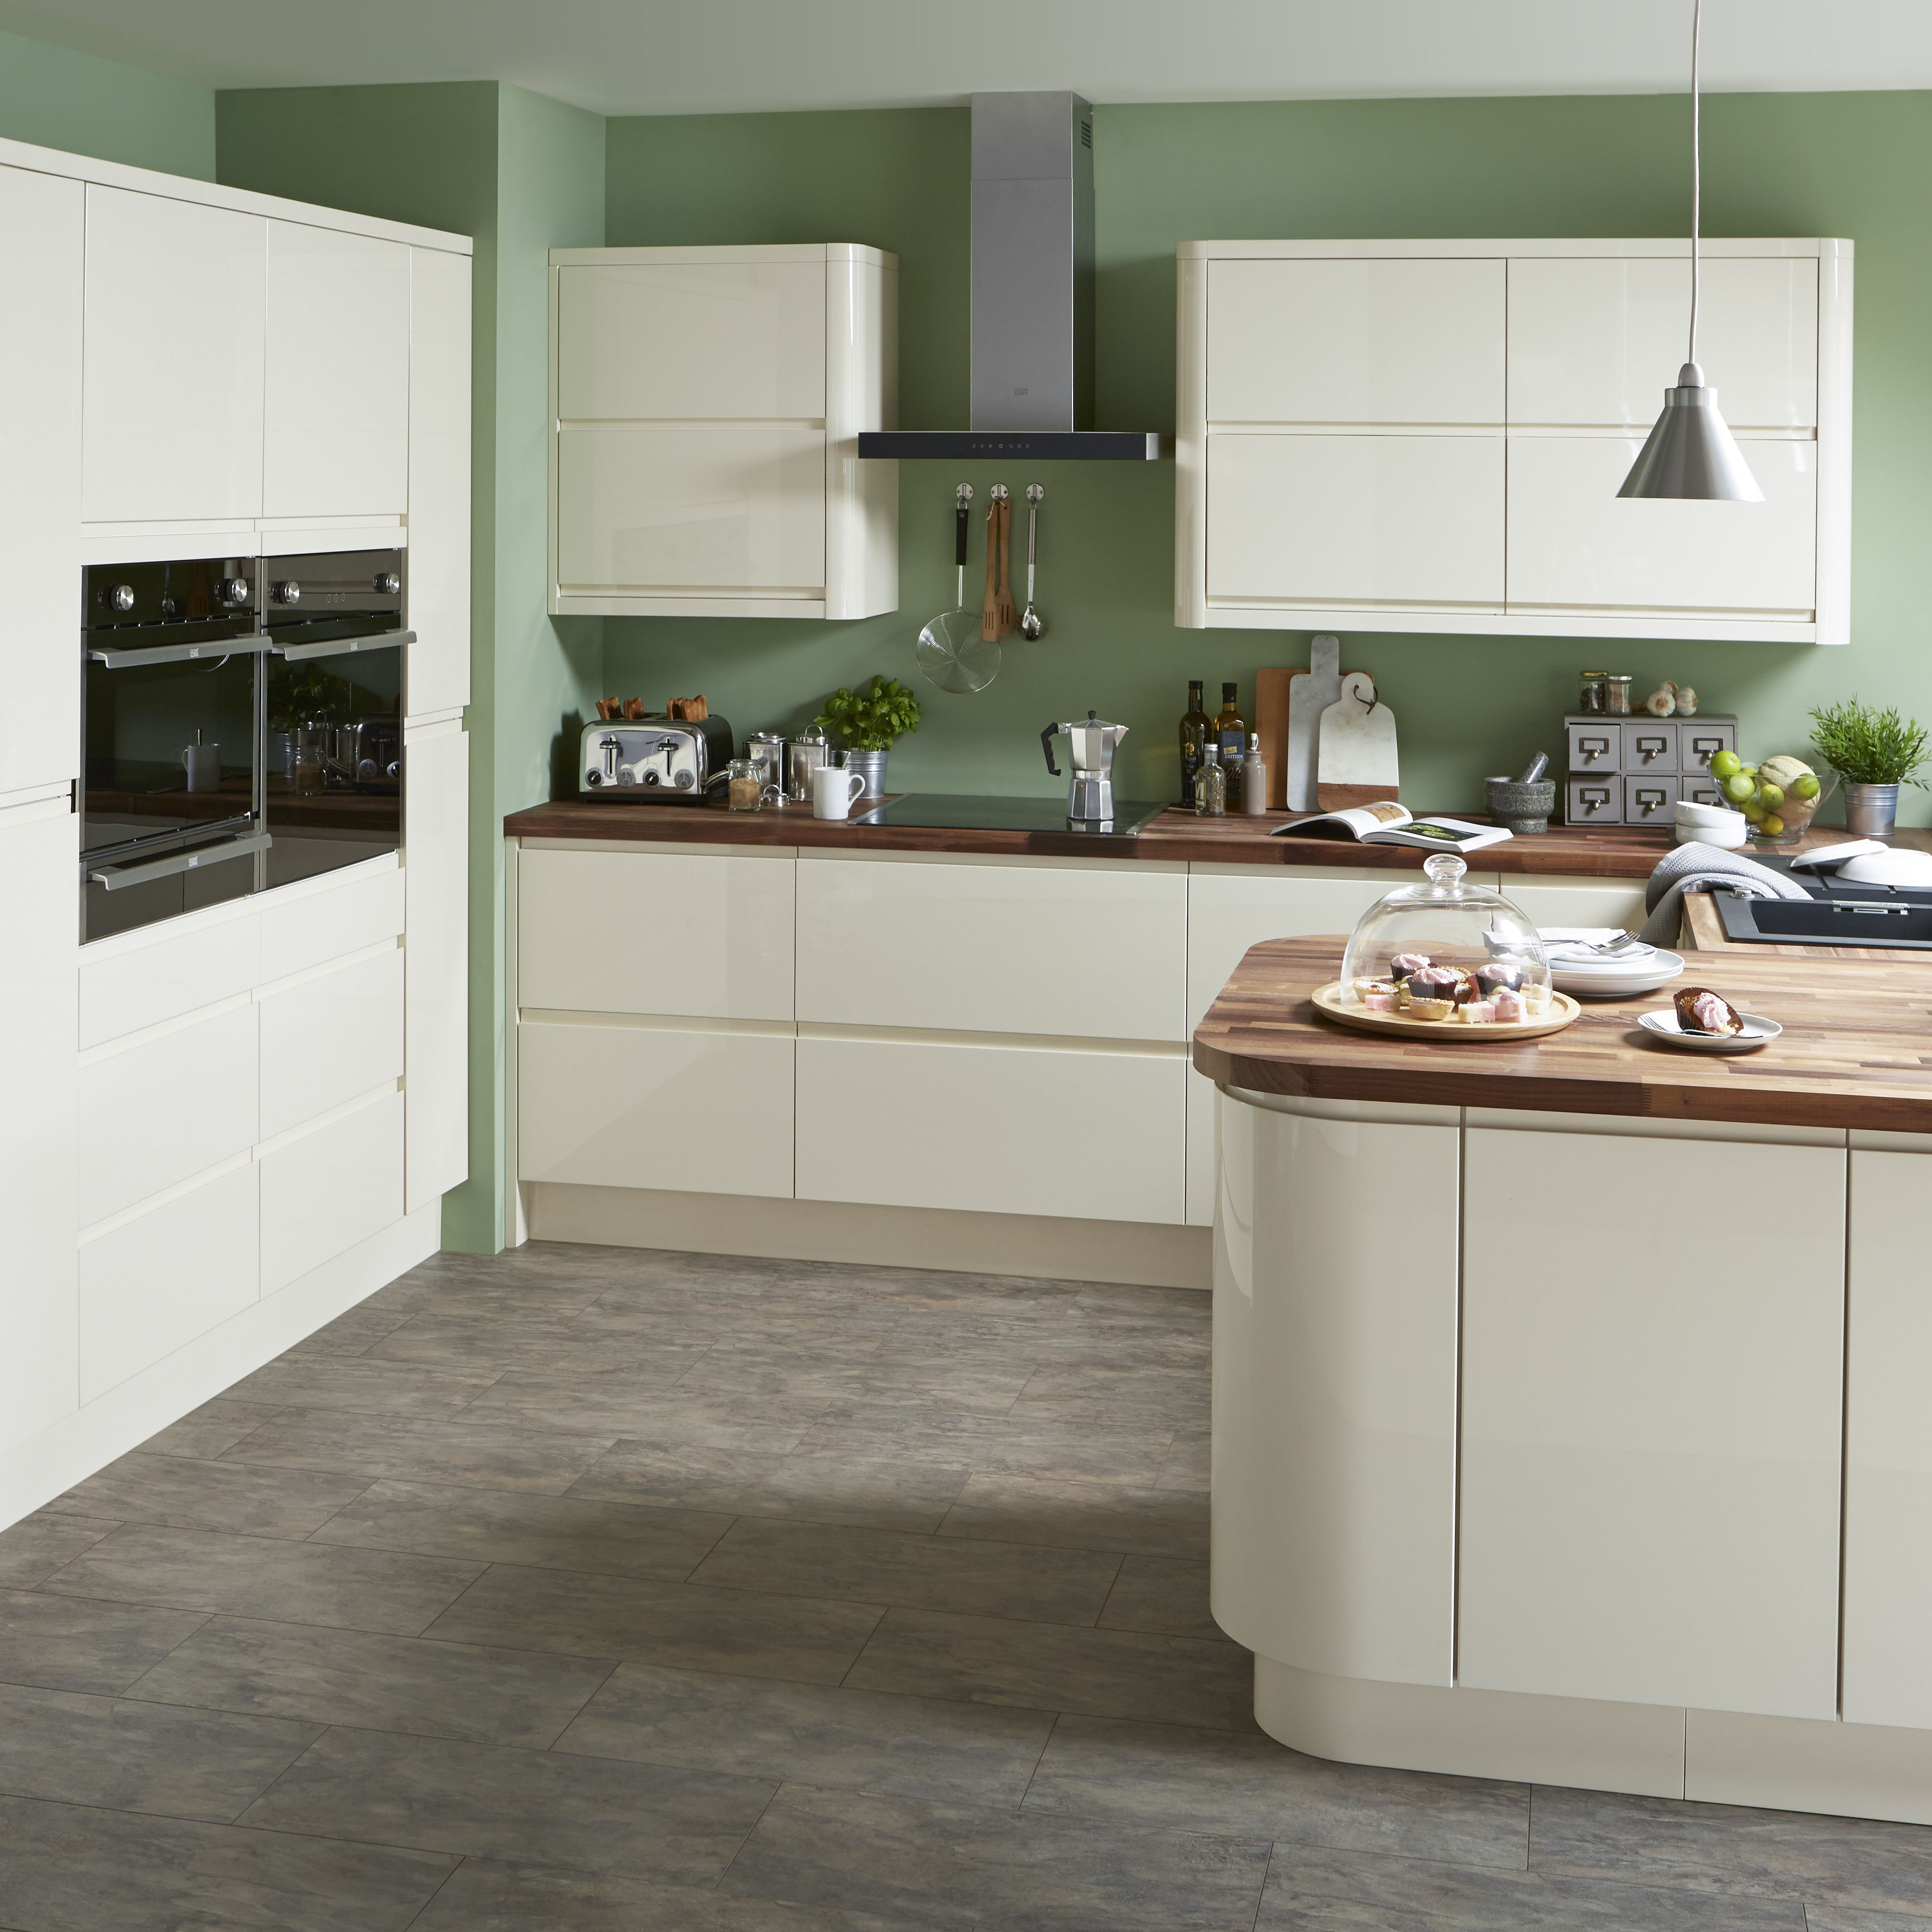 Expanded, Contemporary Kitchen Ideas. Cooke U0026 Lewis Appleby Gloss Cream  Kitchen